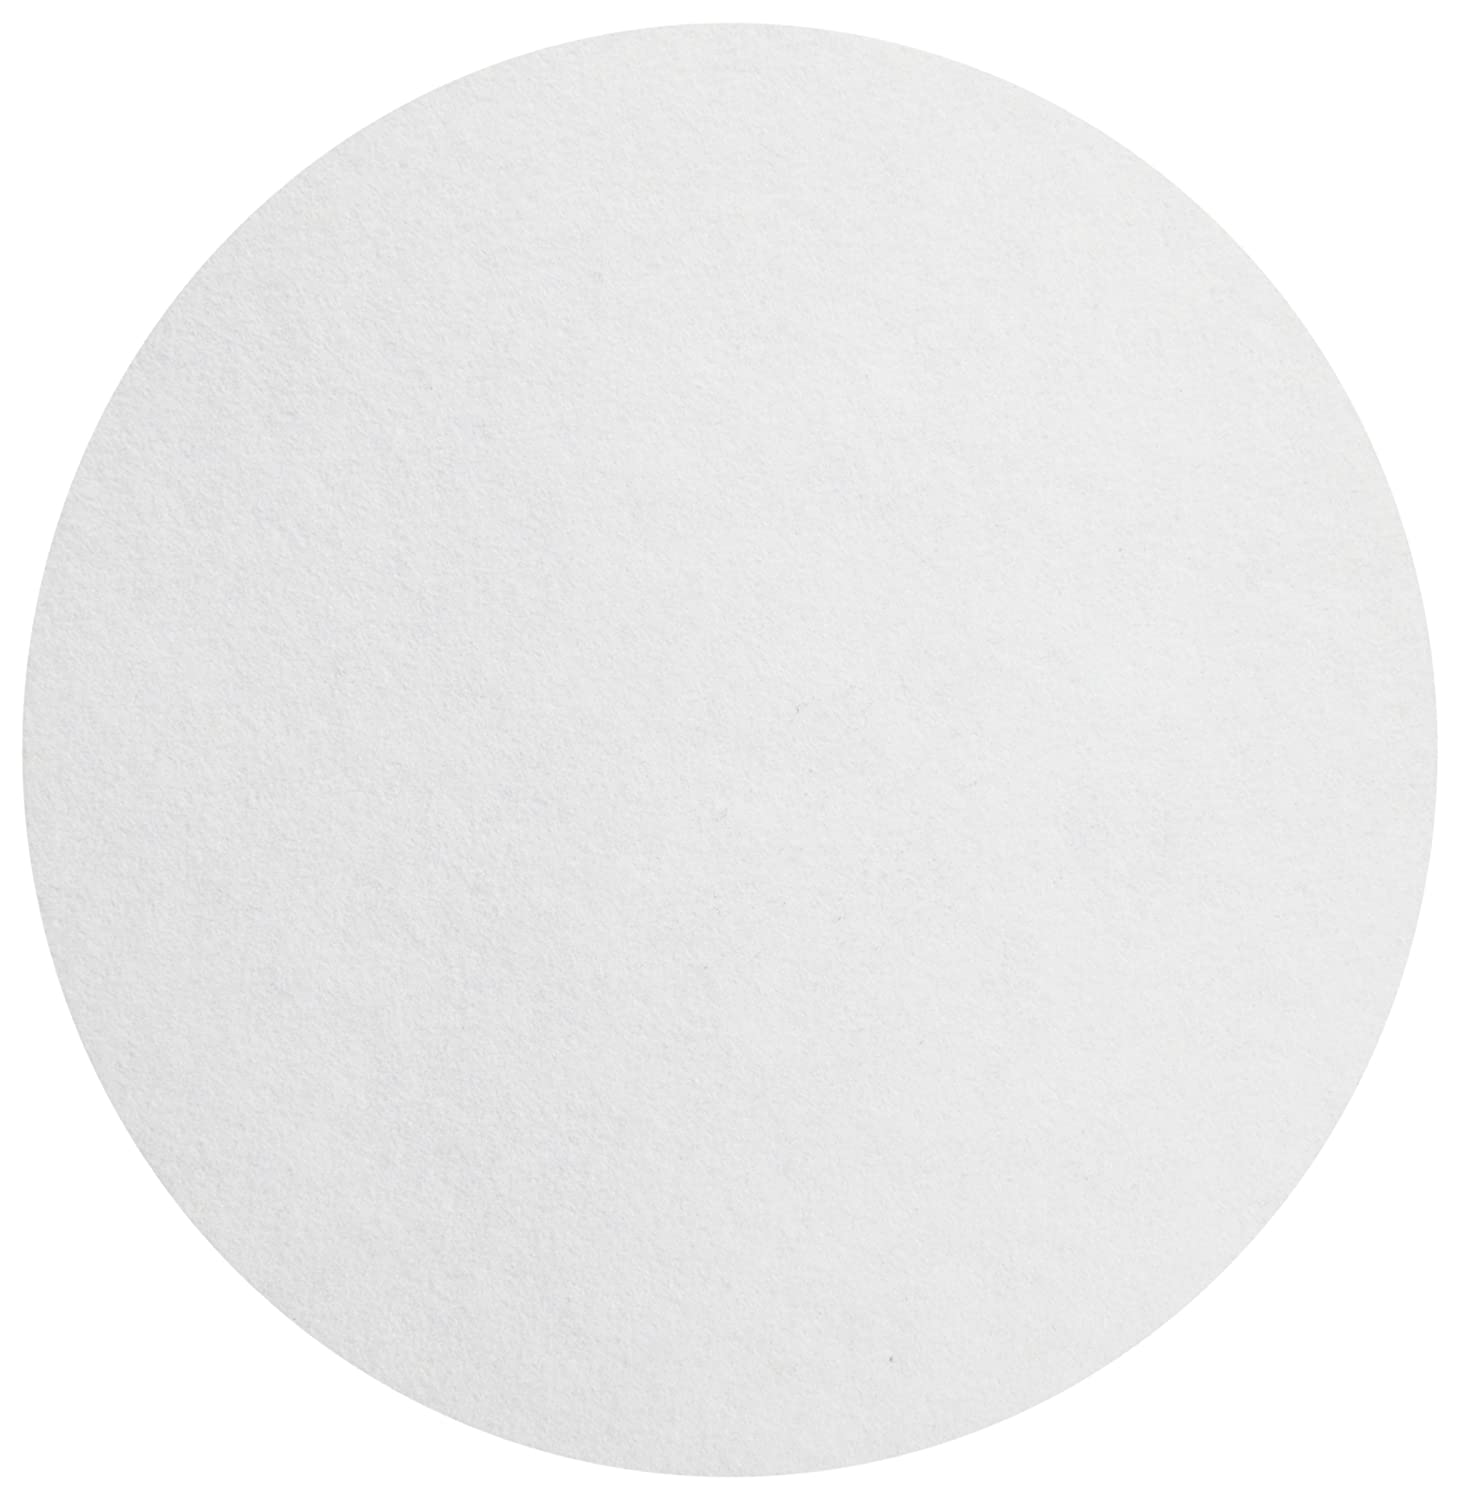 Whatman 1442090 Grade 42 Quantitative Filter Paper, Ash less, 0.007%, circle, 90 mm (Pack of 100) GE Healthcare F1241-4